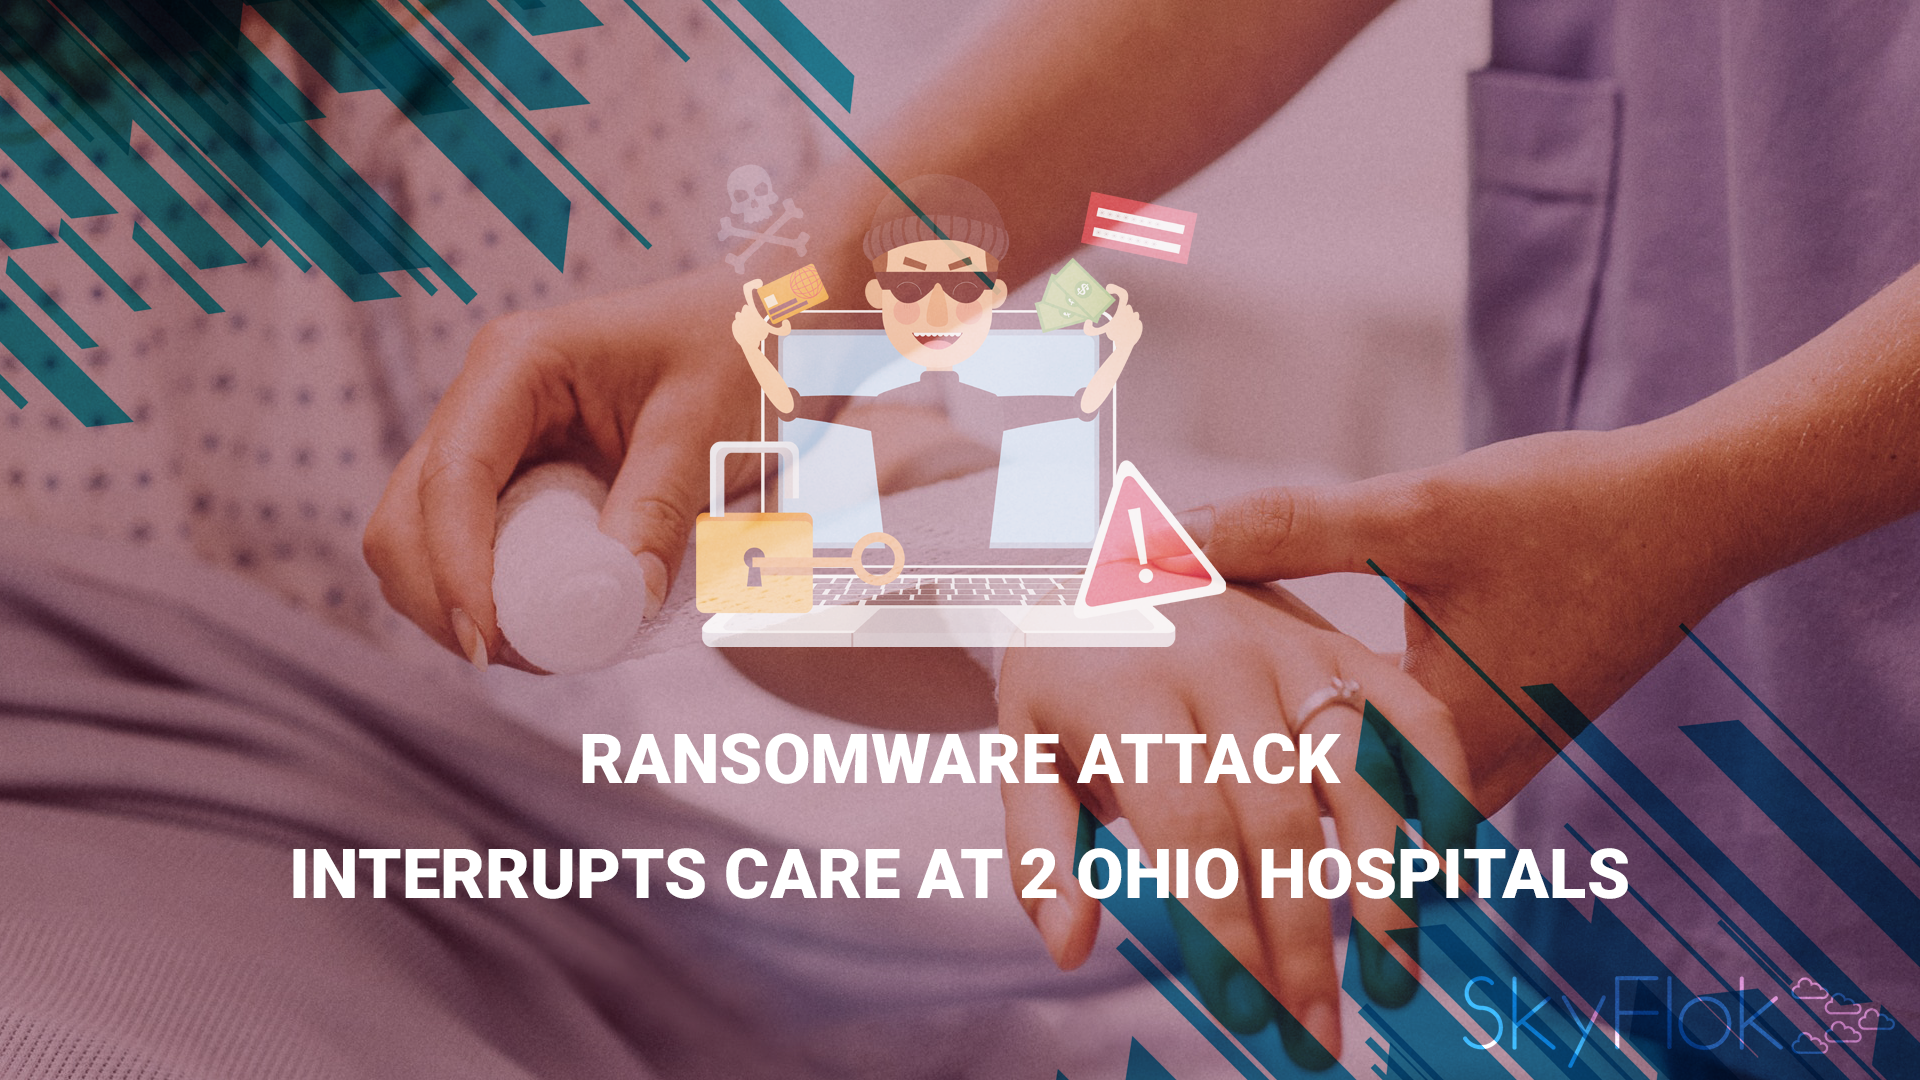 Ransomware Attack Interrupts Care at 2 Ohio Hospitals